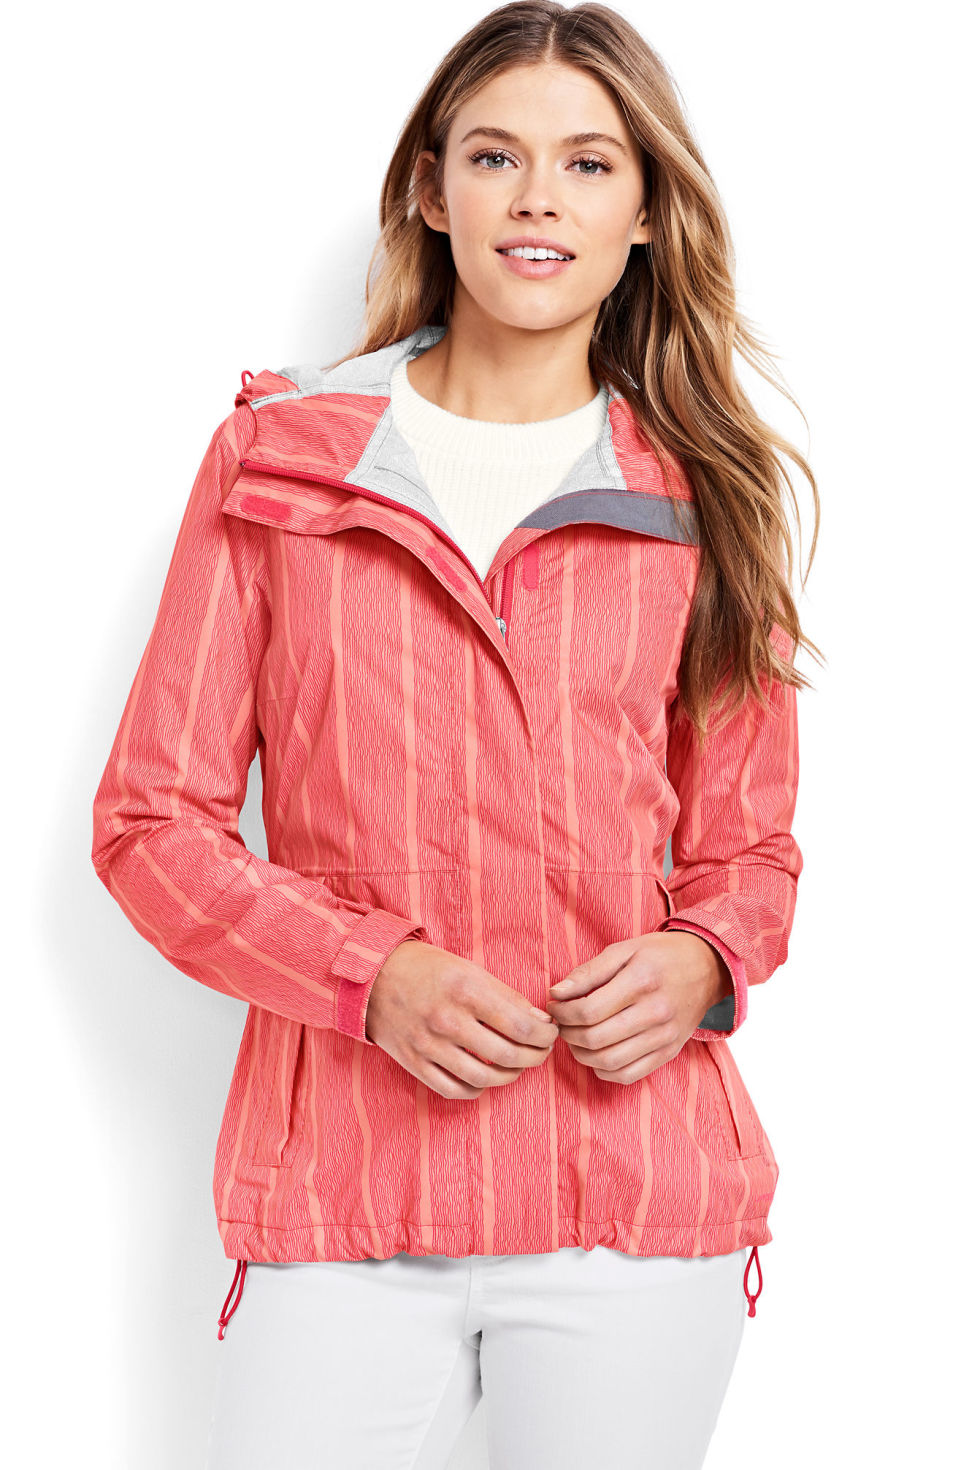 15 cute spring raincoats - best raincoats for women MSJQPUP